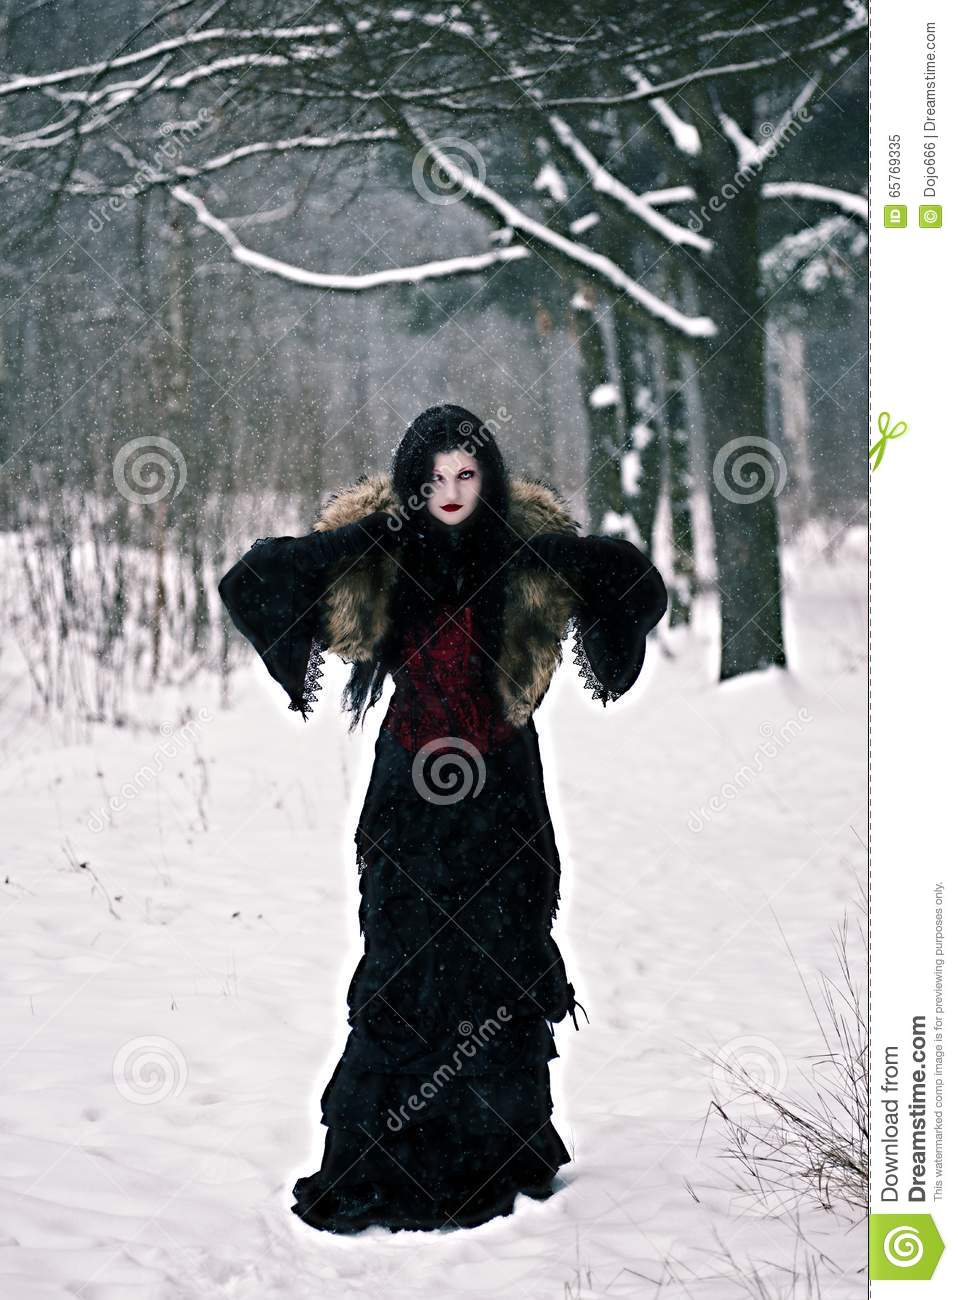 Cosplay Black Witch In Winter Forest Stock Image - Image ...